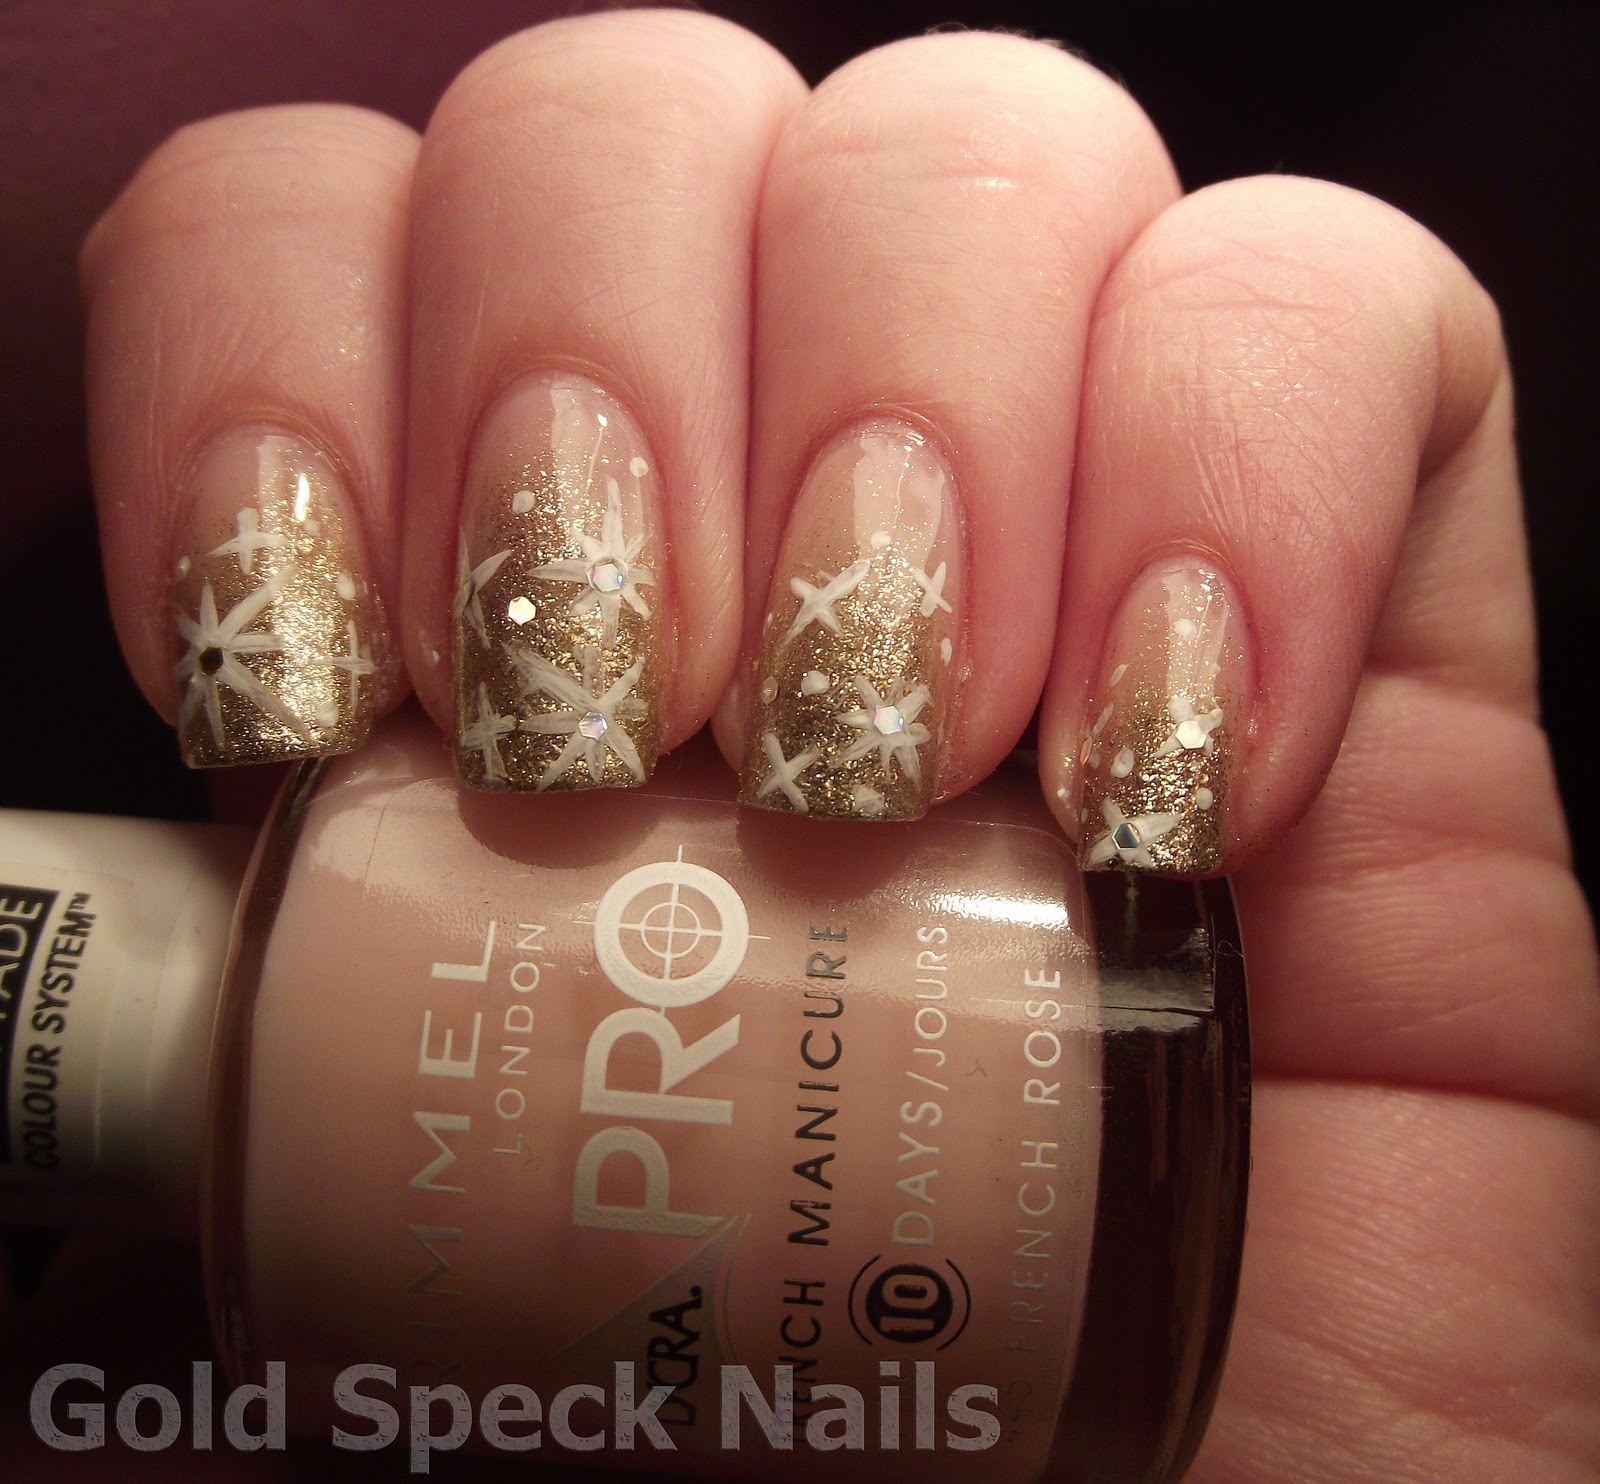 Gold Speck Nails: Gold Glitter Sponged Tips & Stars